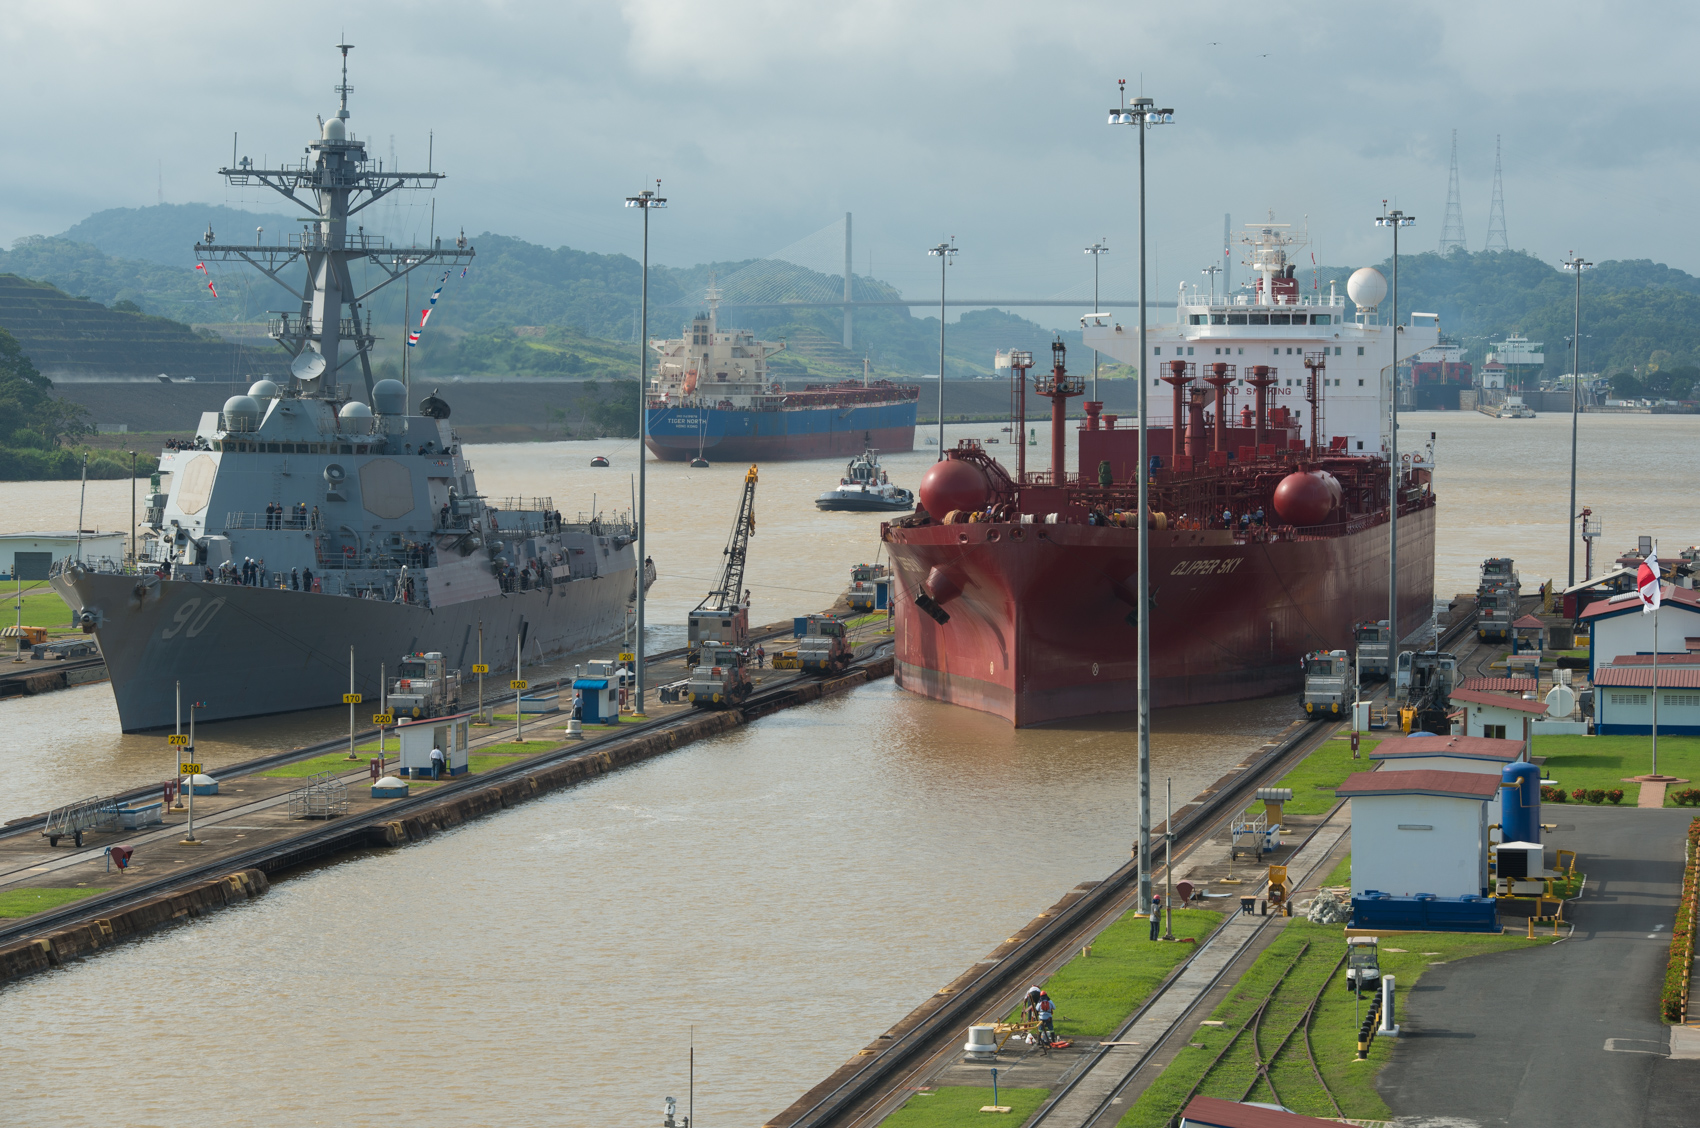 A U.S. destroyer and grain ship are pulled through the final locks of the Panama Canal. The expansion canal is ready to begin operations in 2016. (Photo: Joseph L. Murphy)